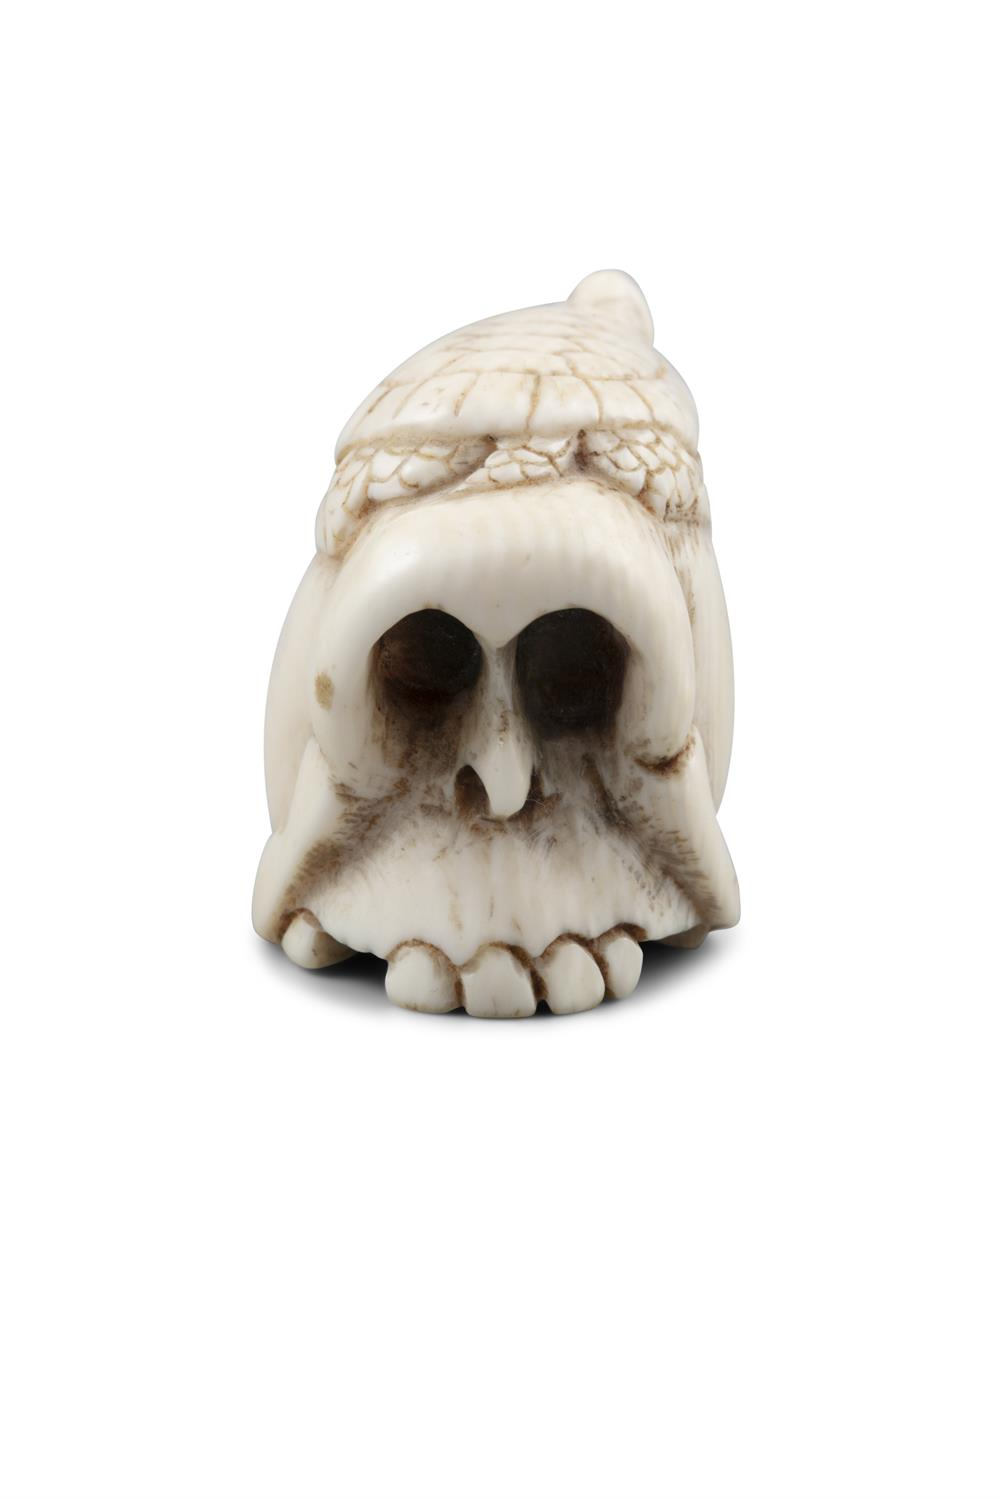 *VANITY - A GROUP OF TWO (2) 'SKULL' KATABORI NETSUKE Japan, 19th century The first one carved out - Image 16 of 18